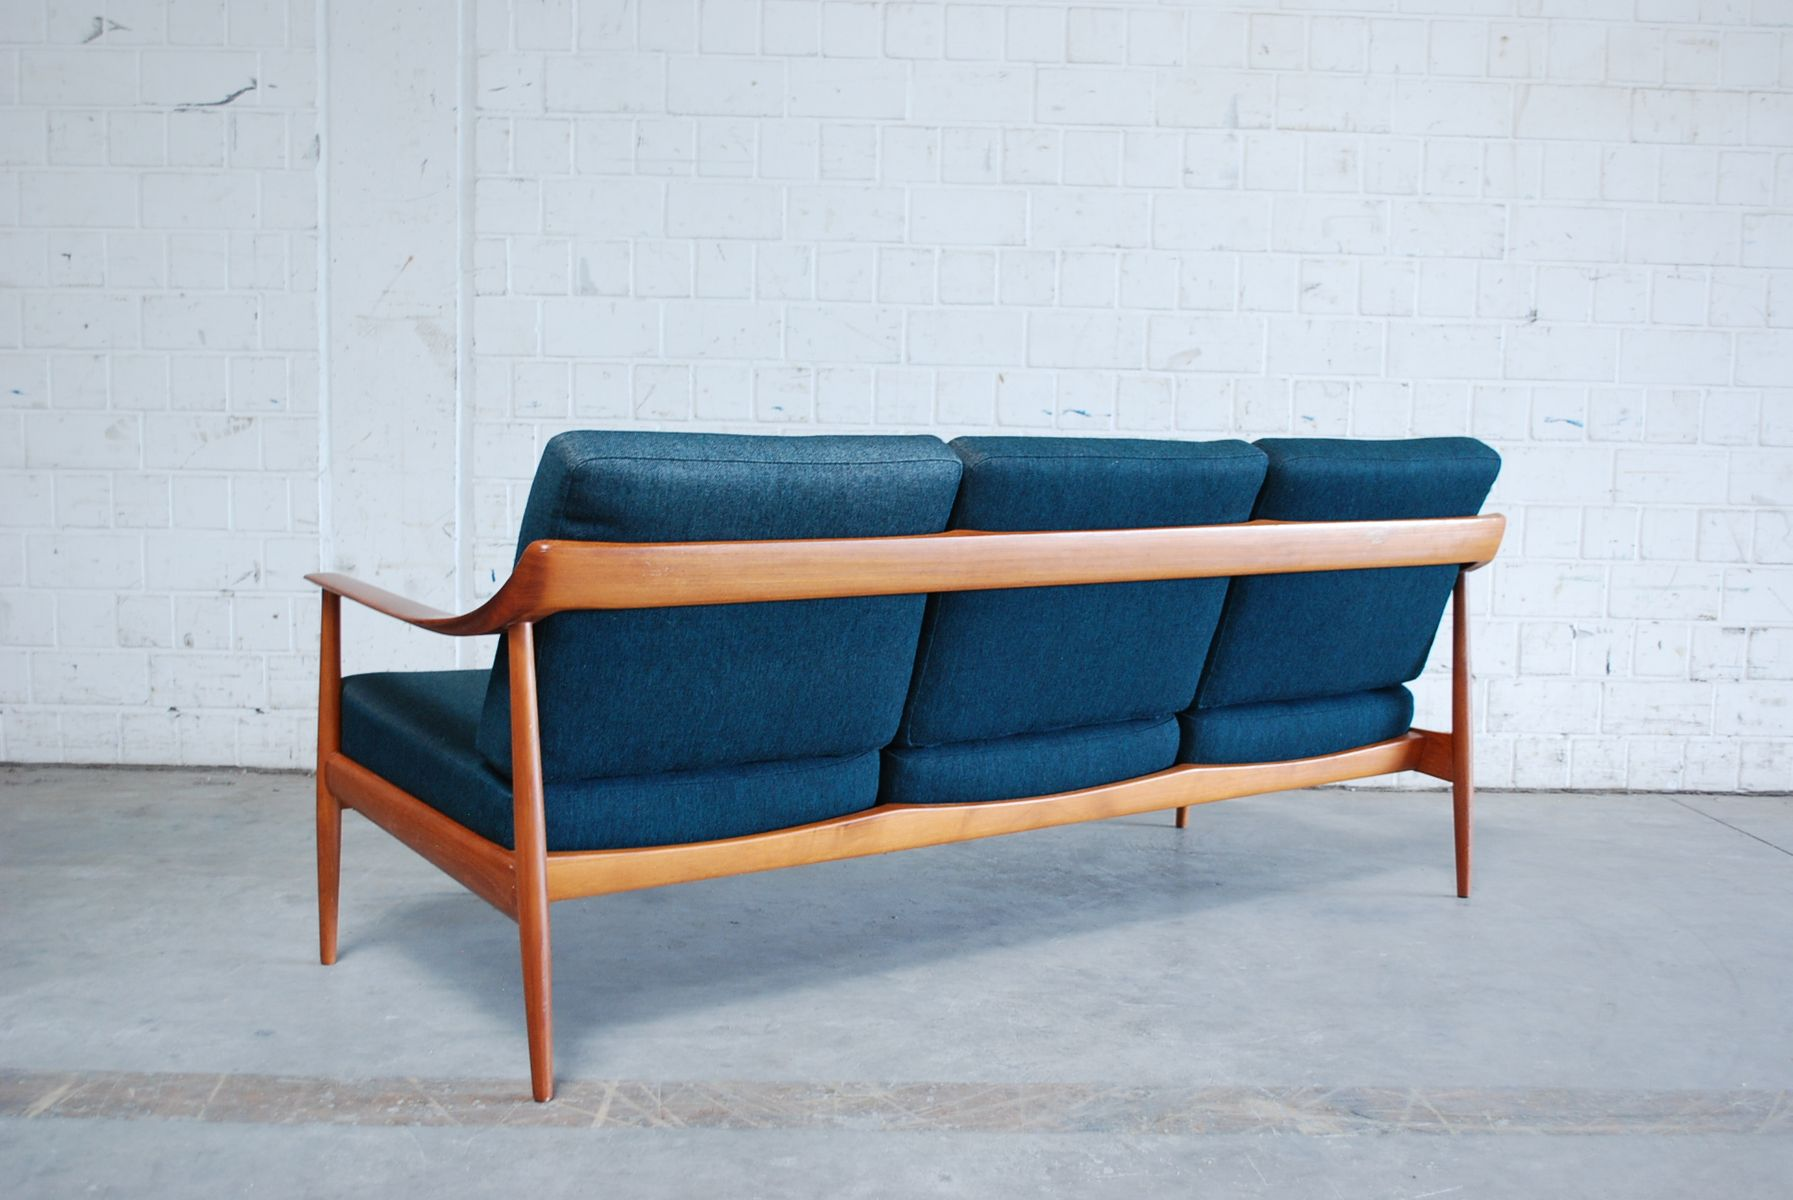 Petrol Teak Sofa From Knoll 1960s For Sale At Pamono